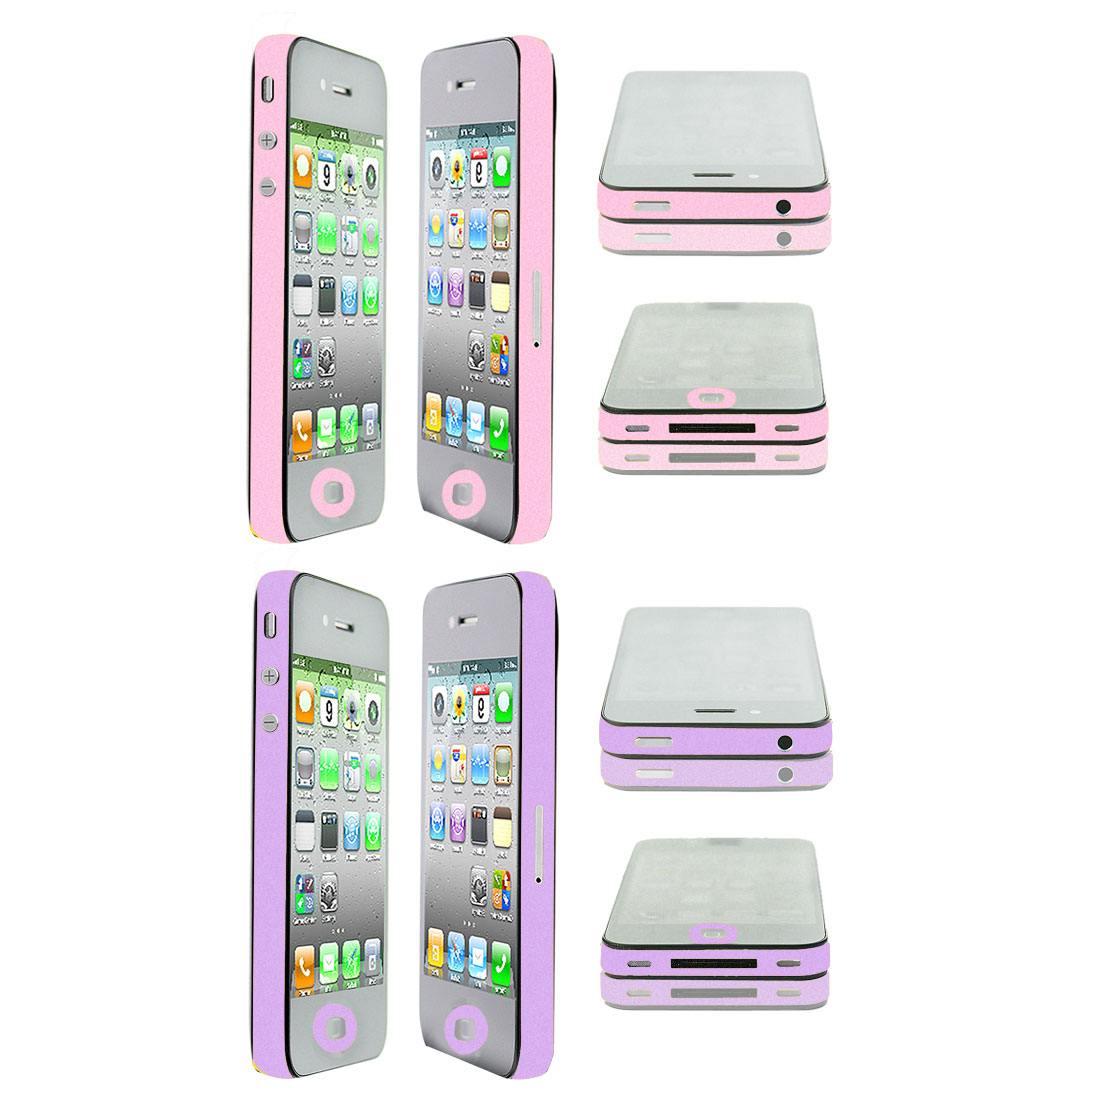 2 Pcs Frame Edge Wrap Decal Button Sticker Shield Pink Purple for iPhone 4 4G 4S